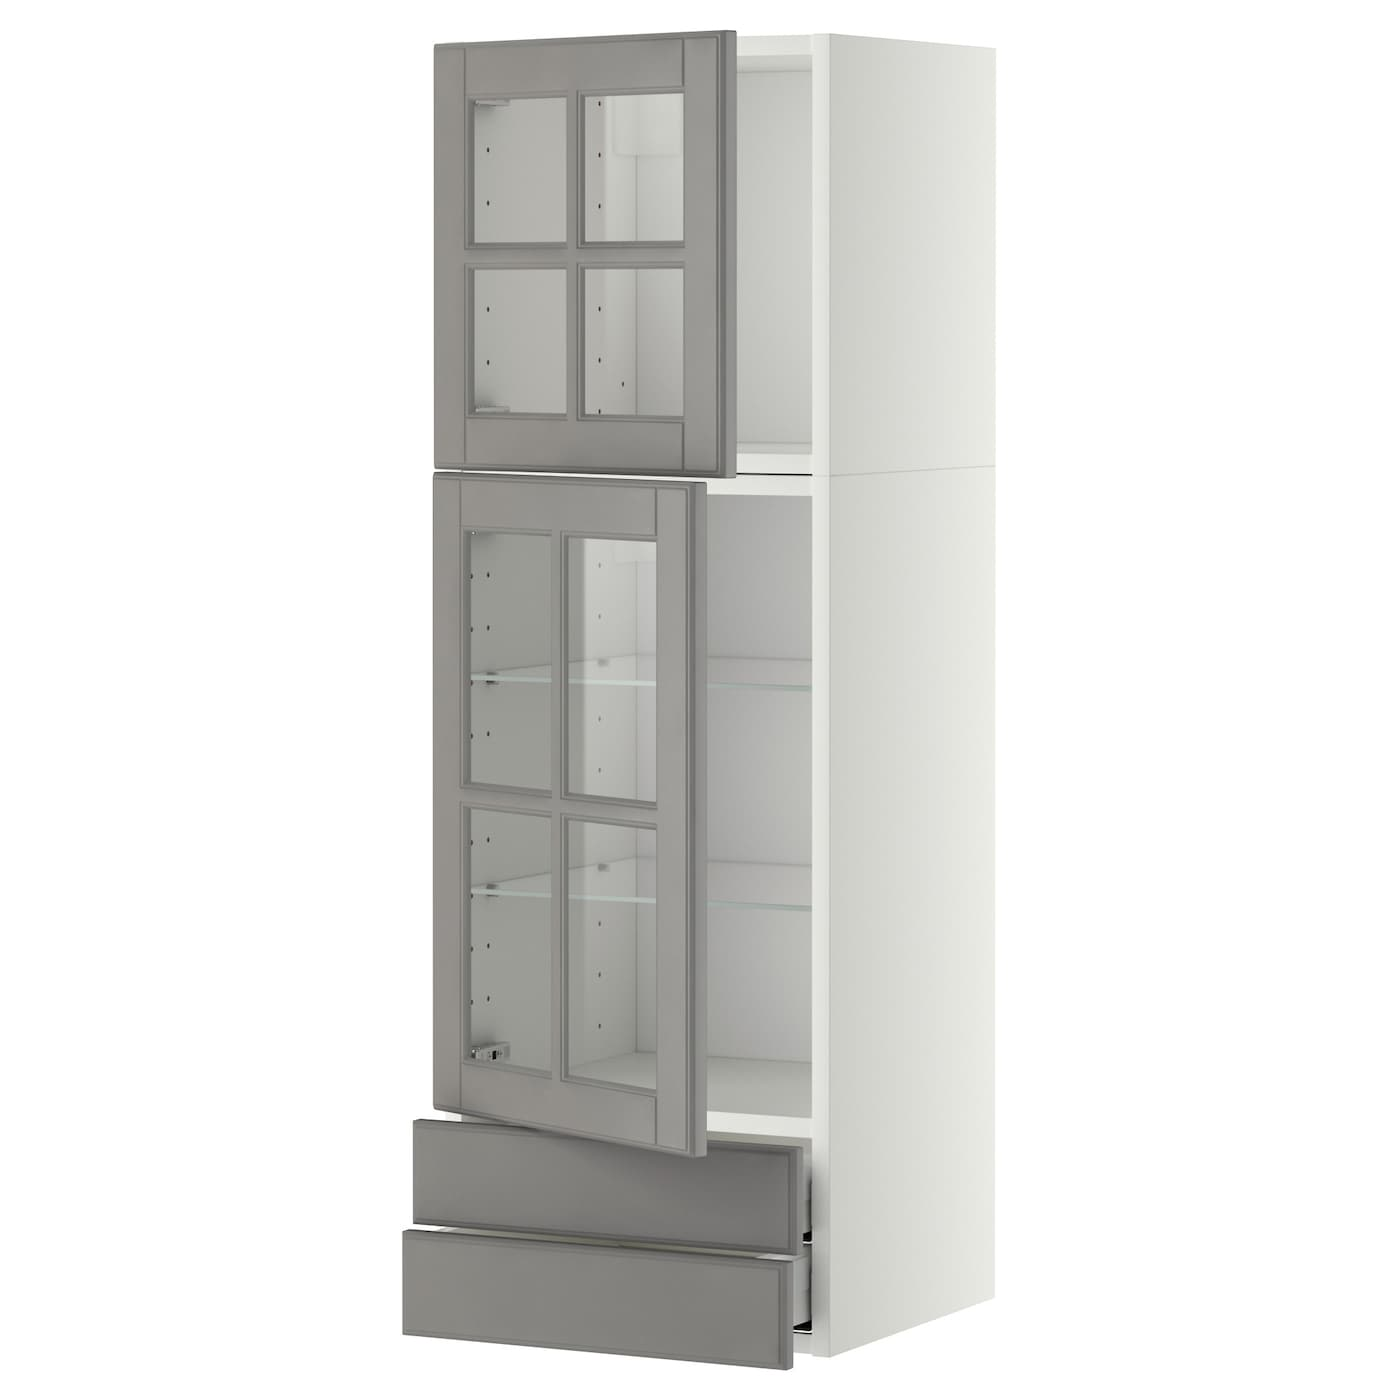 Ikea Kitchen Bodbyn Grey: METOD/MAXIMERA Wall Cab W 2 Glass Doors/2 Drawers White